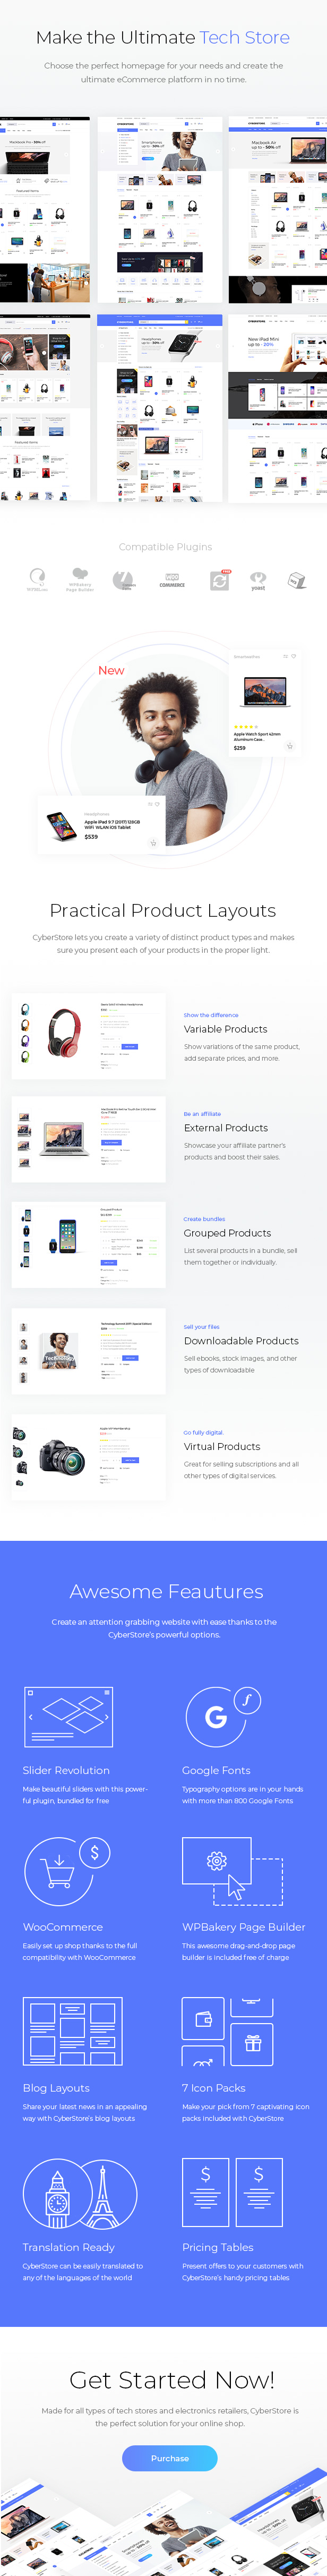 Latest Photo of  CyberStore Simple eCommerce Shop